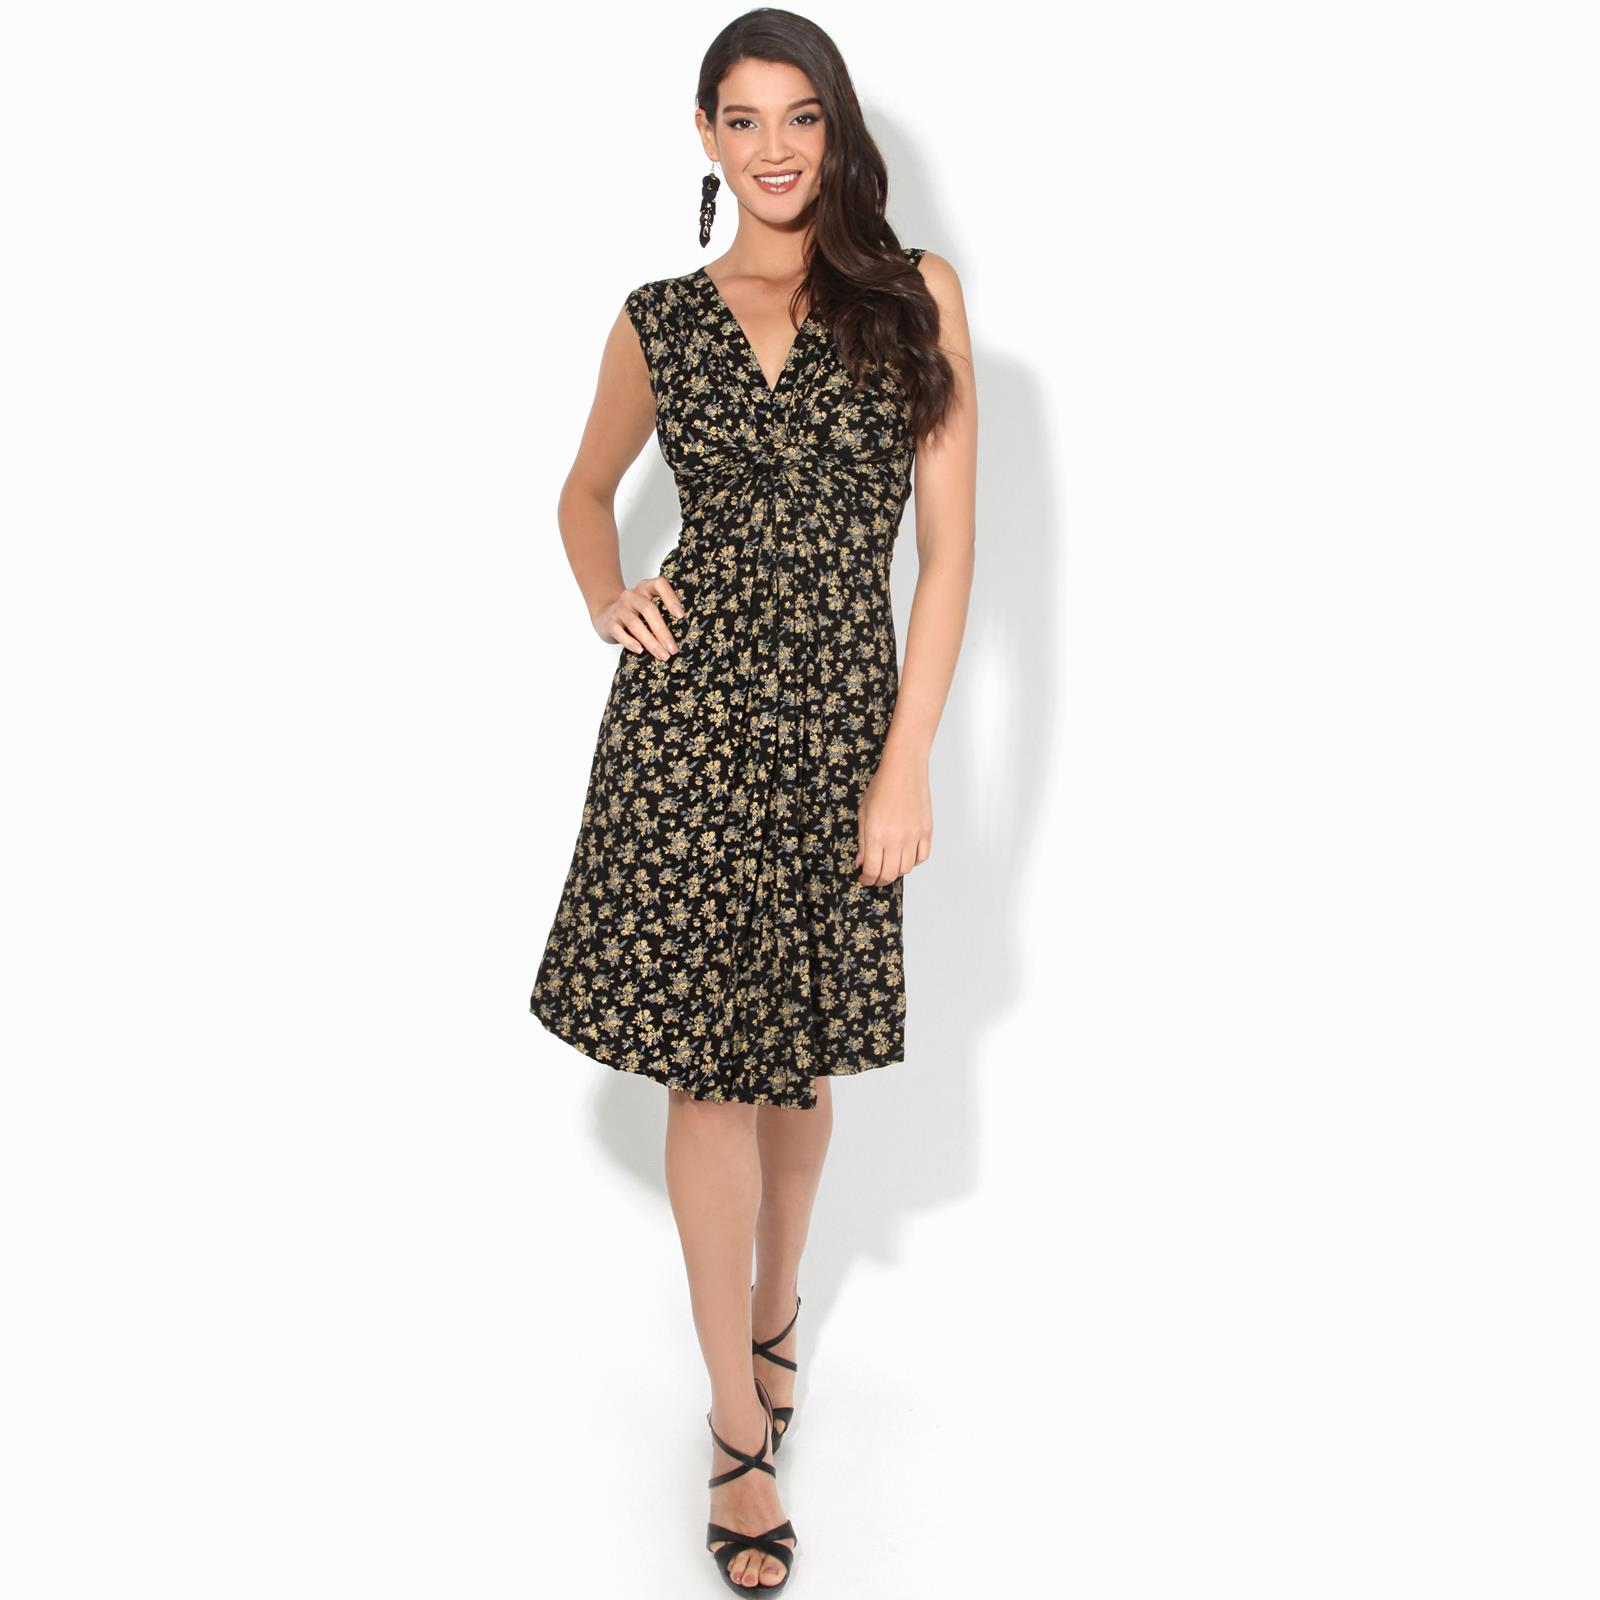 Women-Ladies-Floral-Midi-Dress-Pattern-Sleeveless-V-Neck-Stretch-Casual-Sundress thumbnail 6